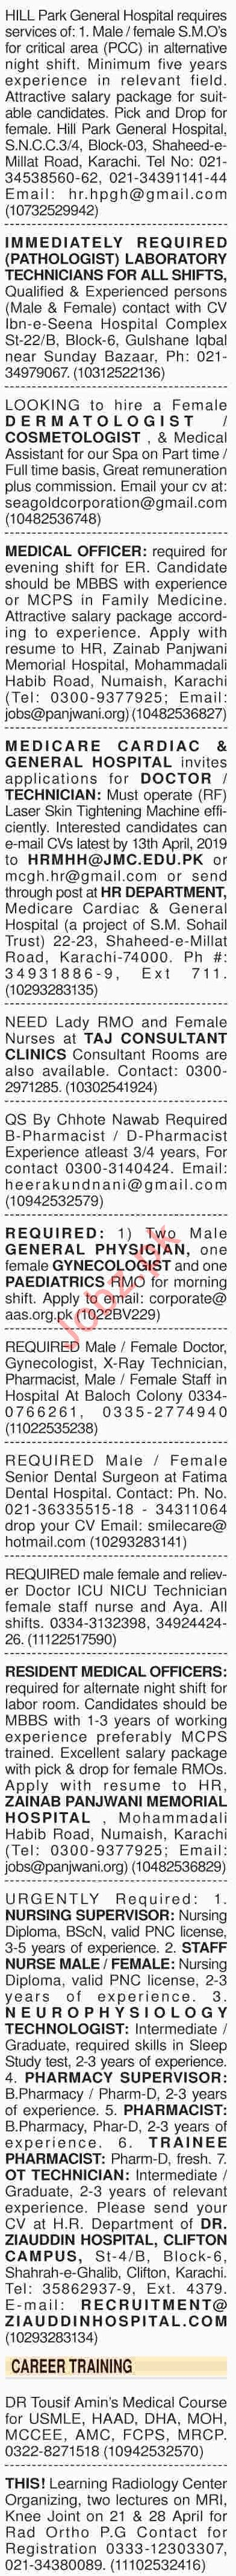 Dawn Sunday Classified Ads 7th April 2019 for Medical Staff